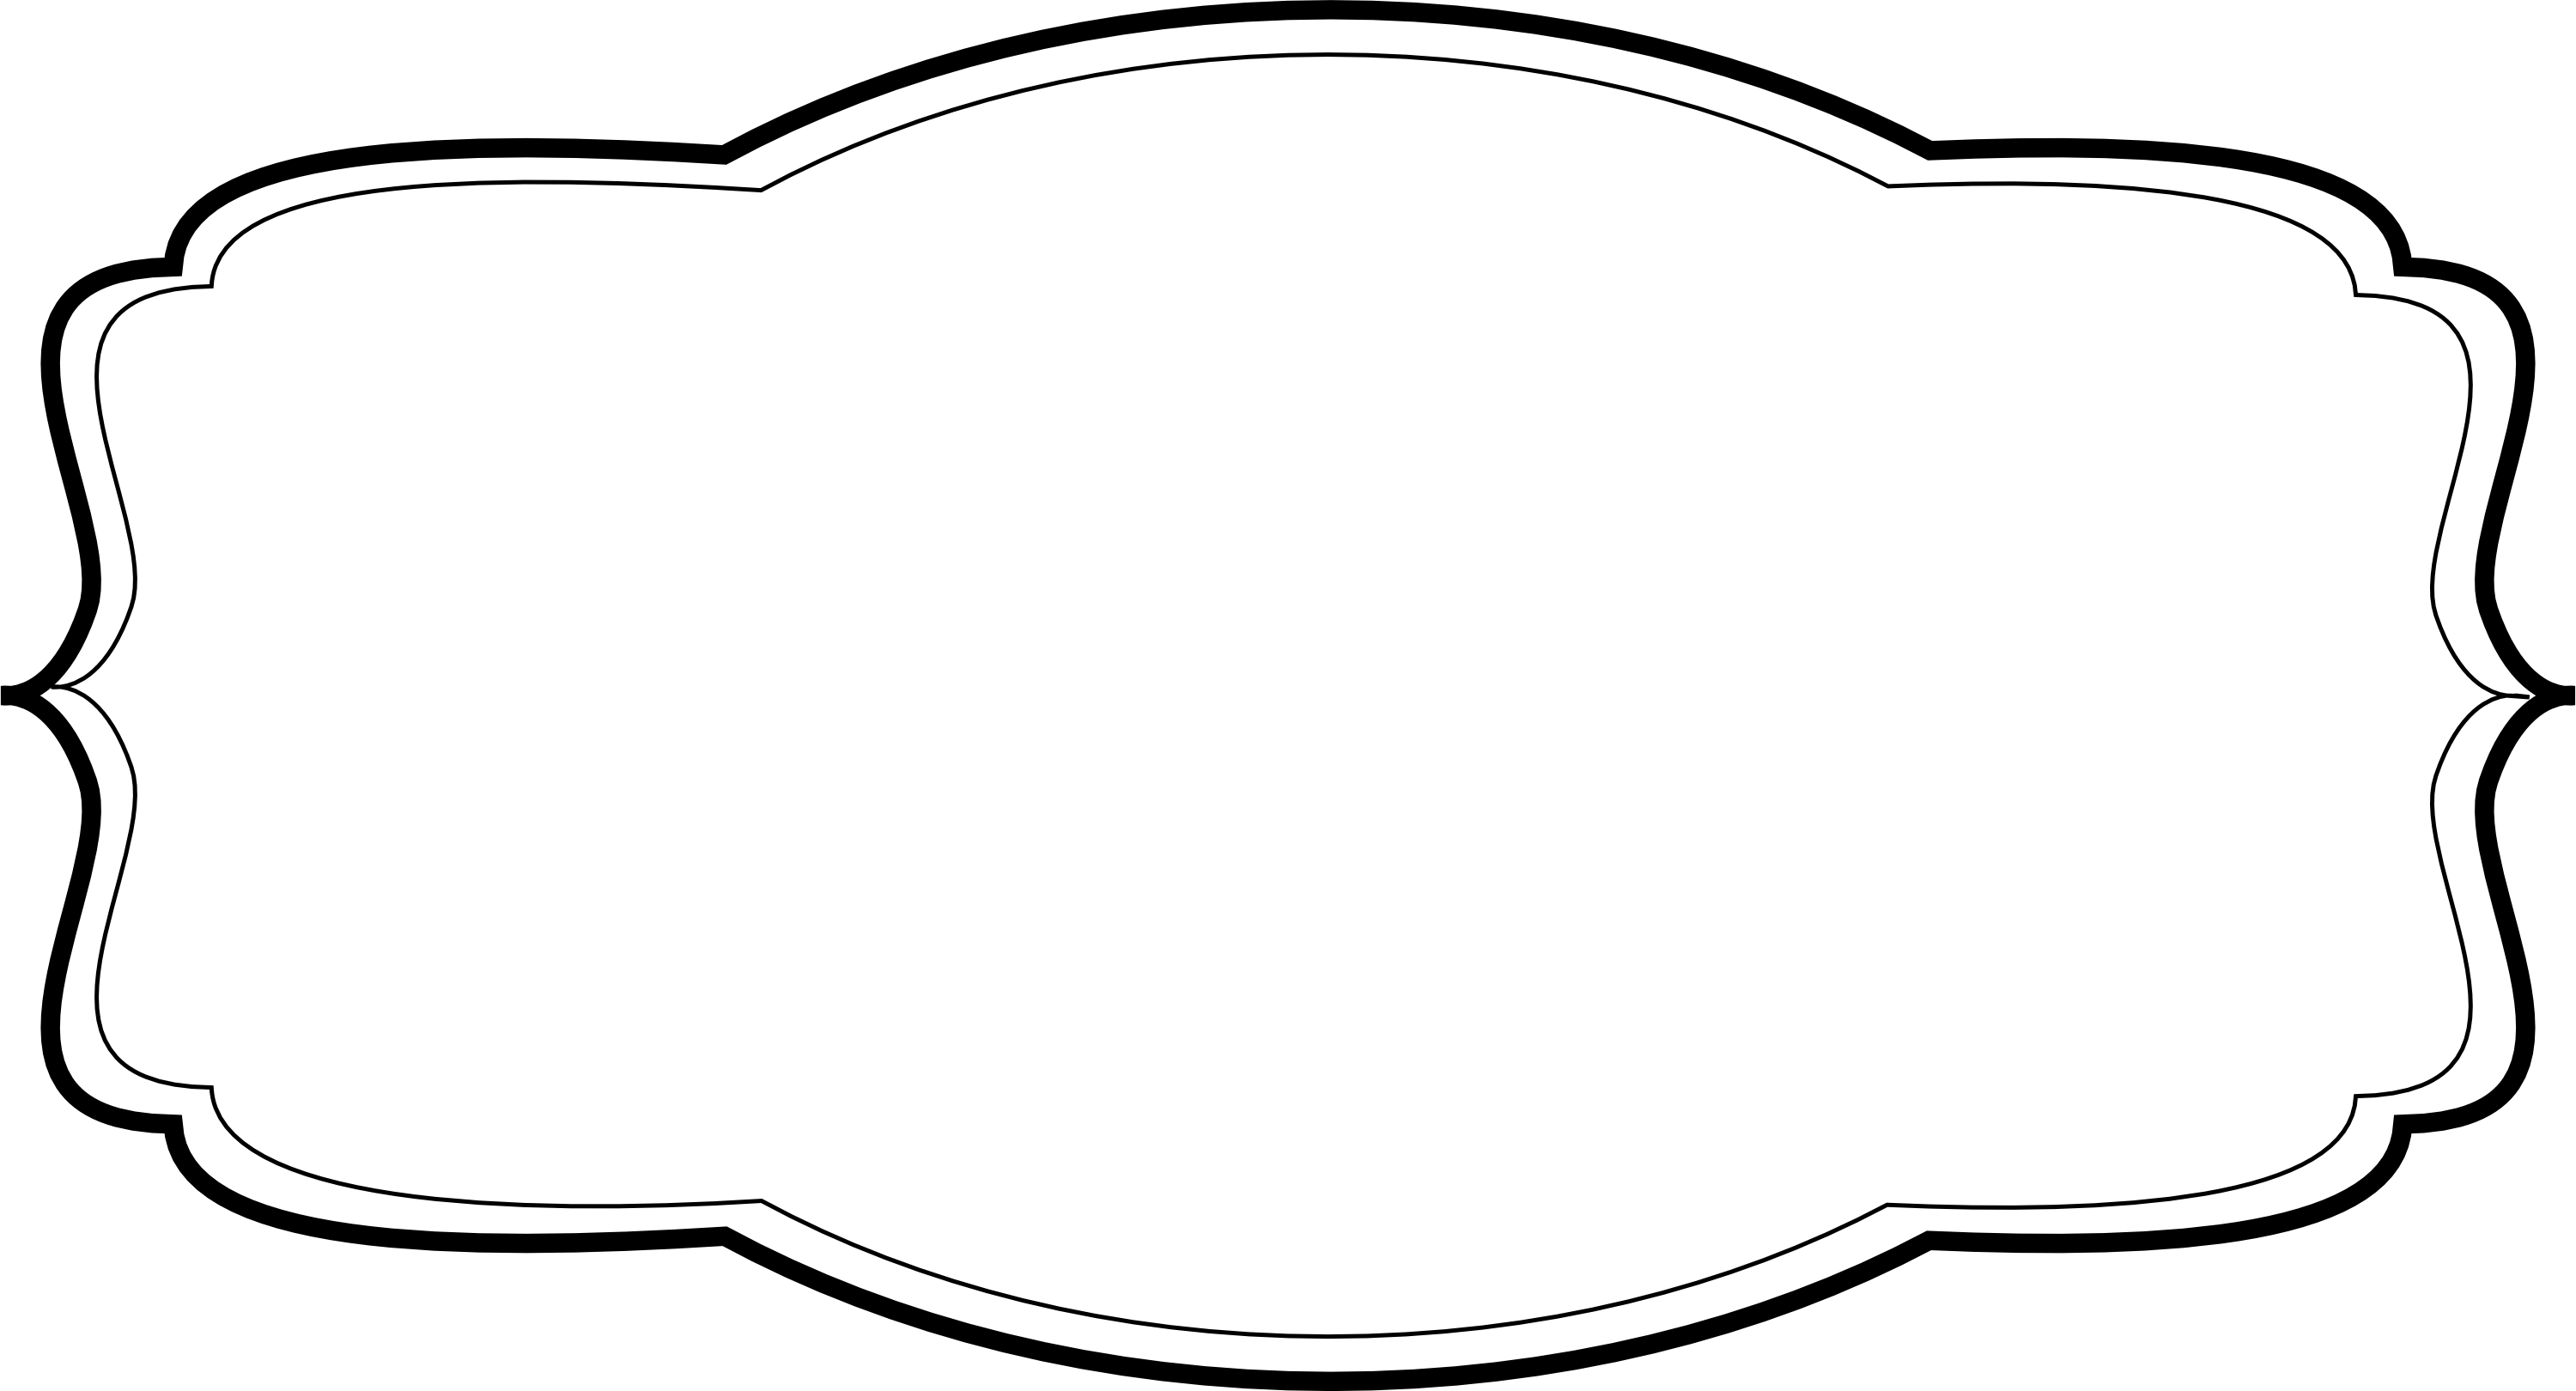 label frames png - photo #16